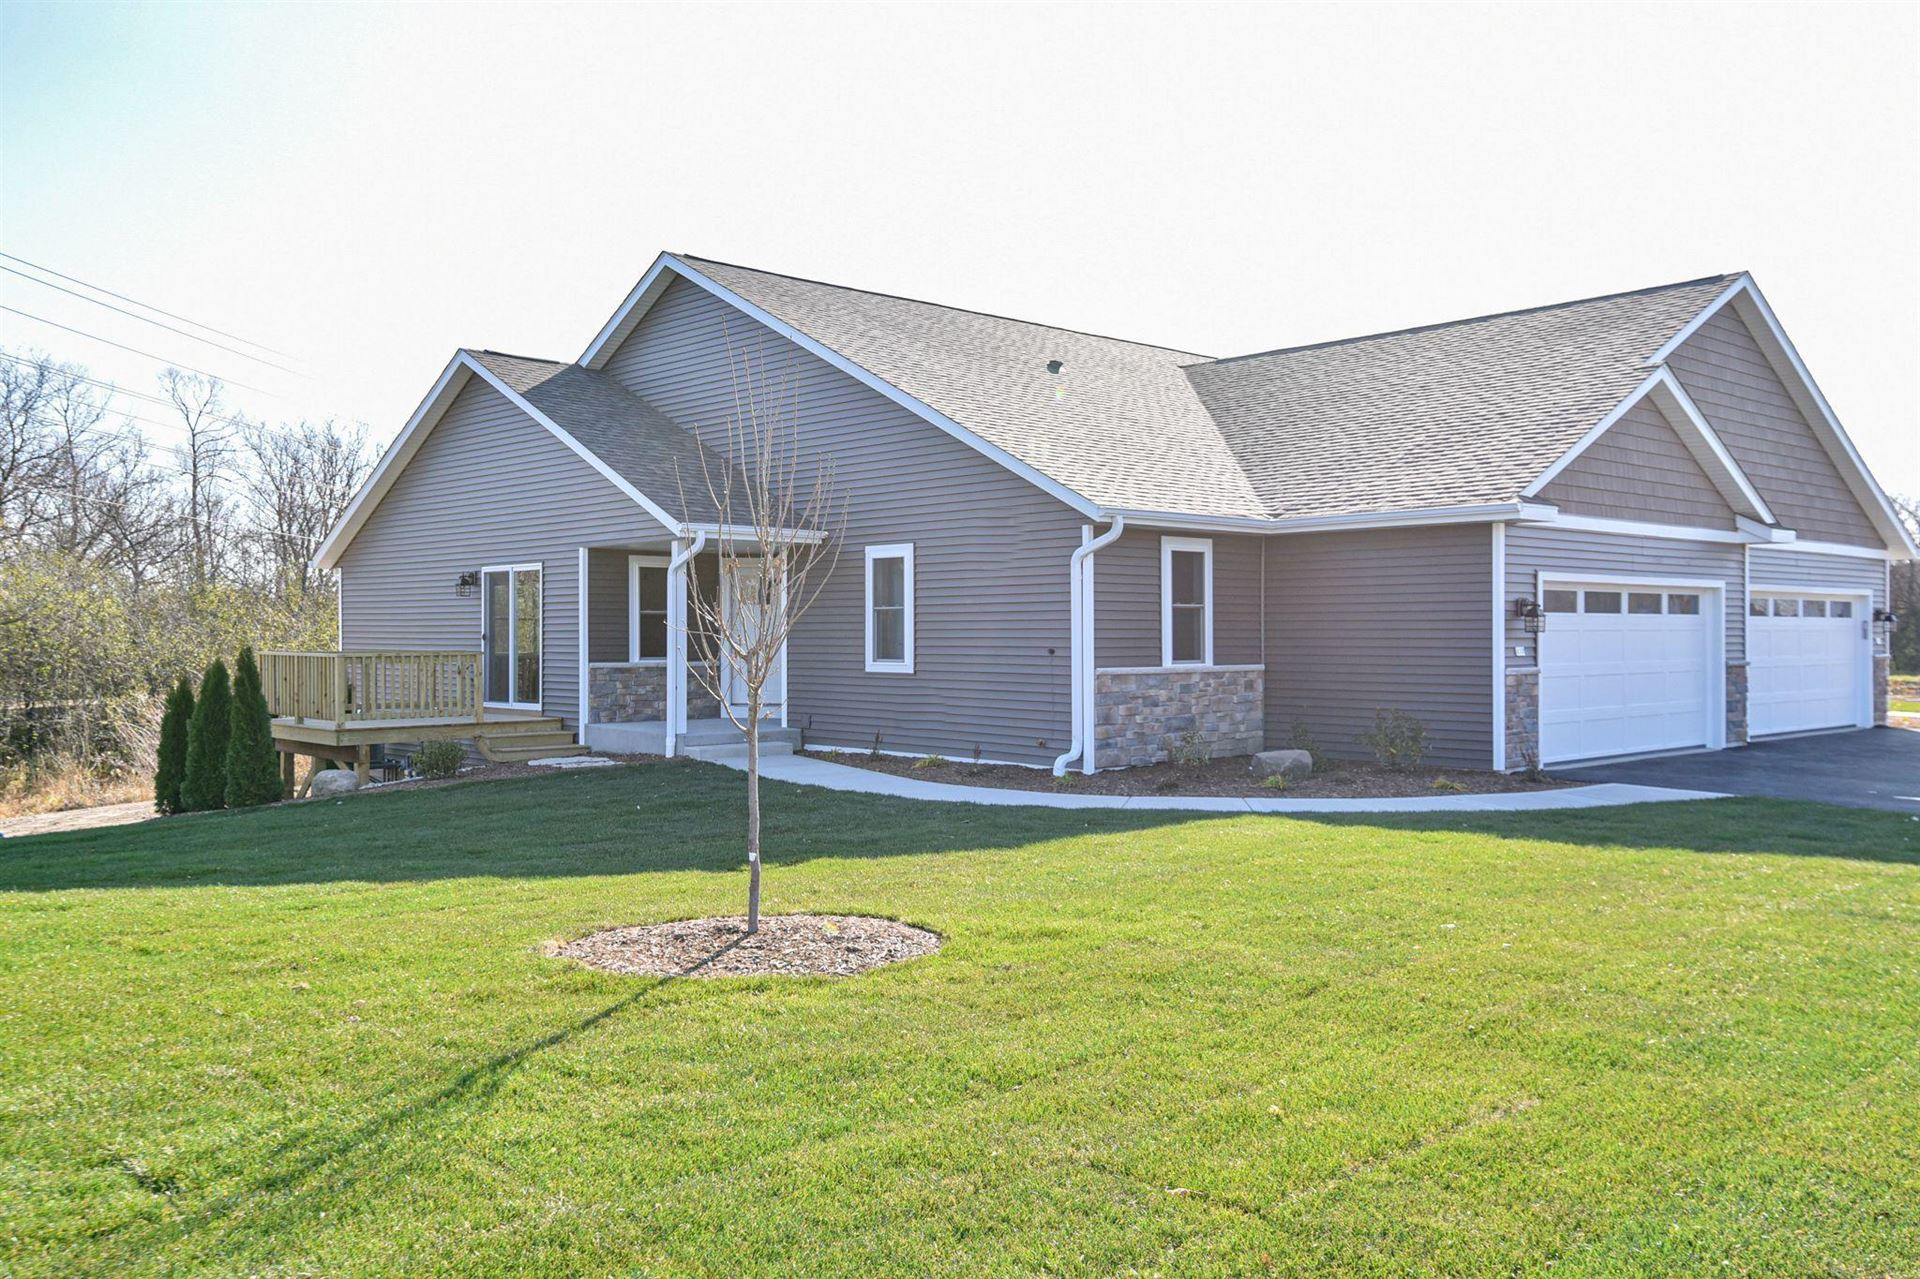 408 Trailview Crossing, Waterford, WI 53185 - #: 1690237